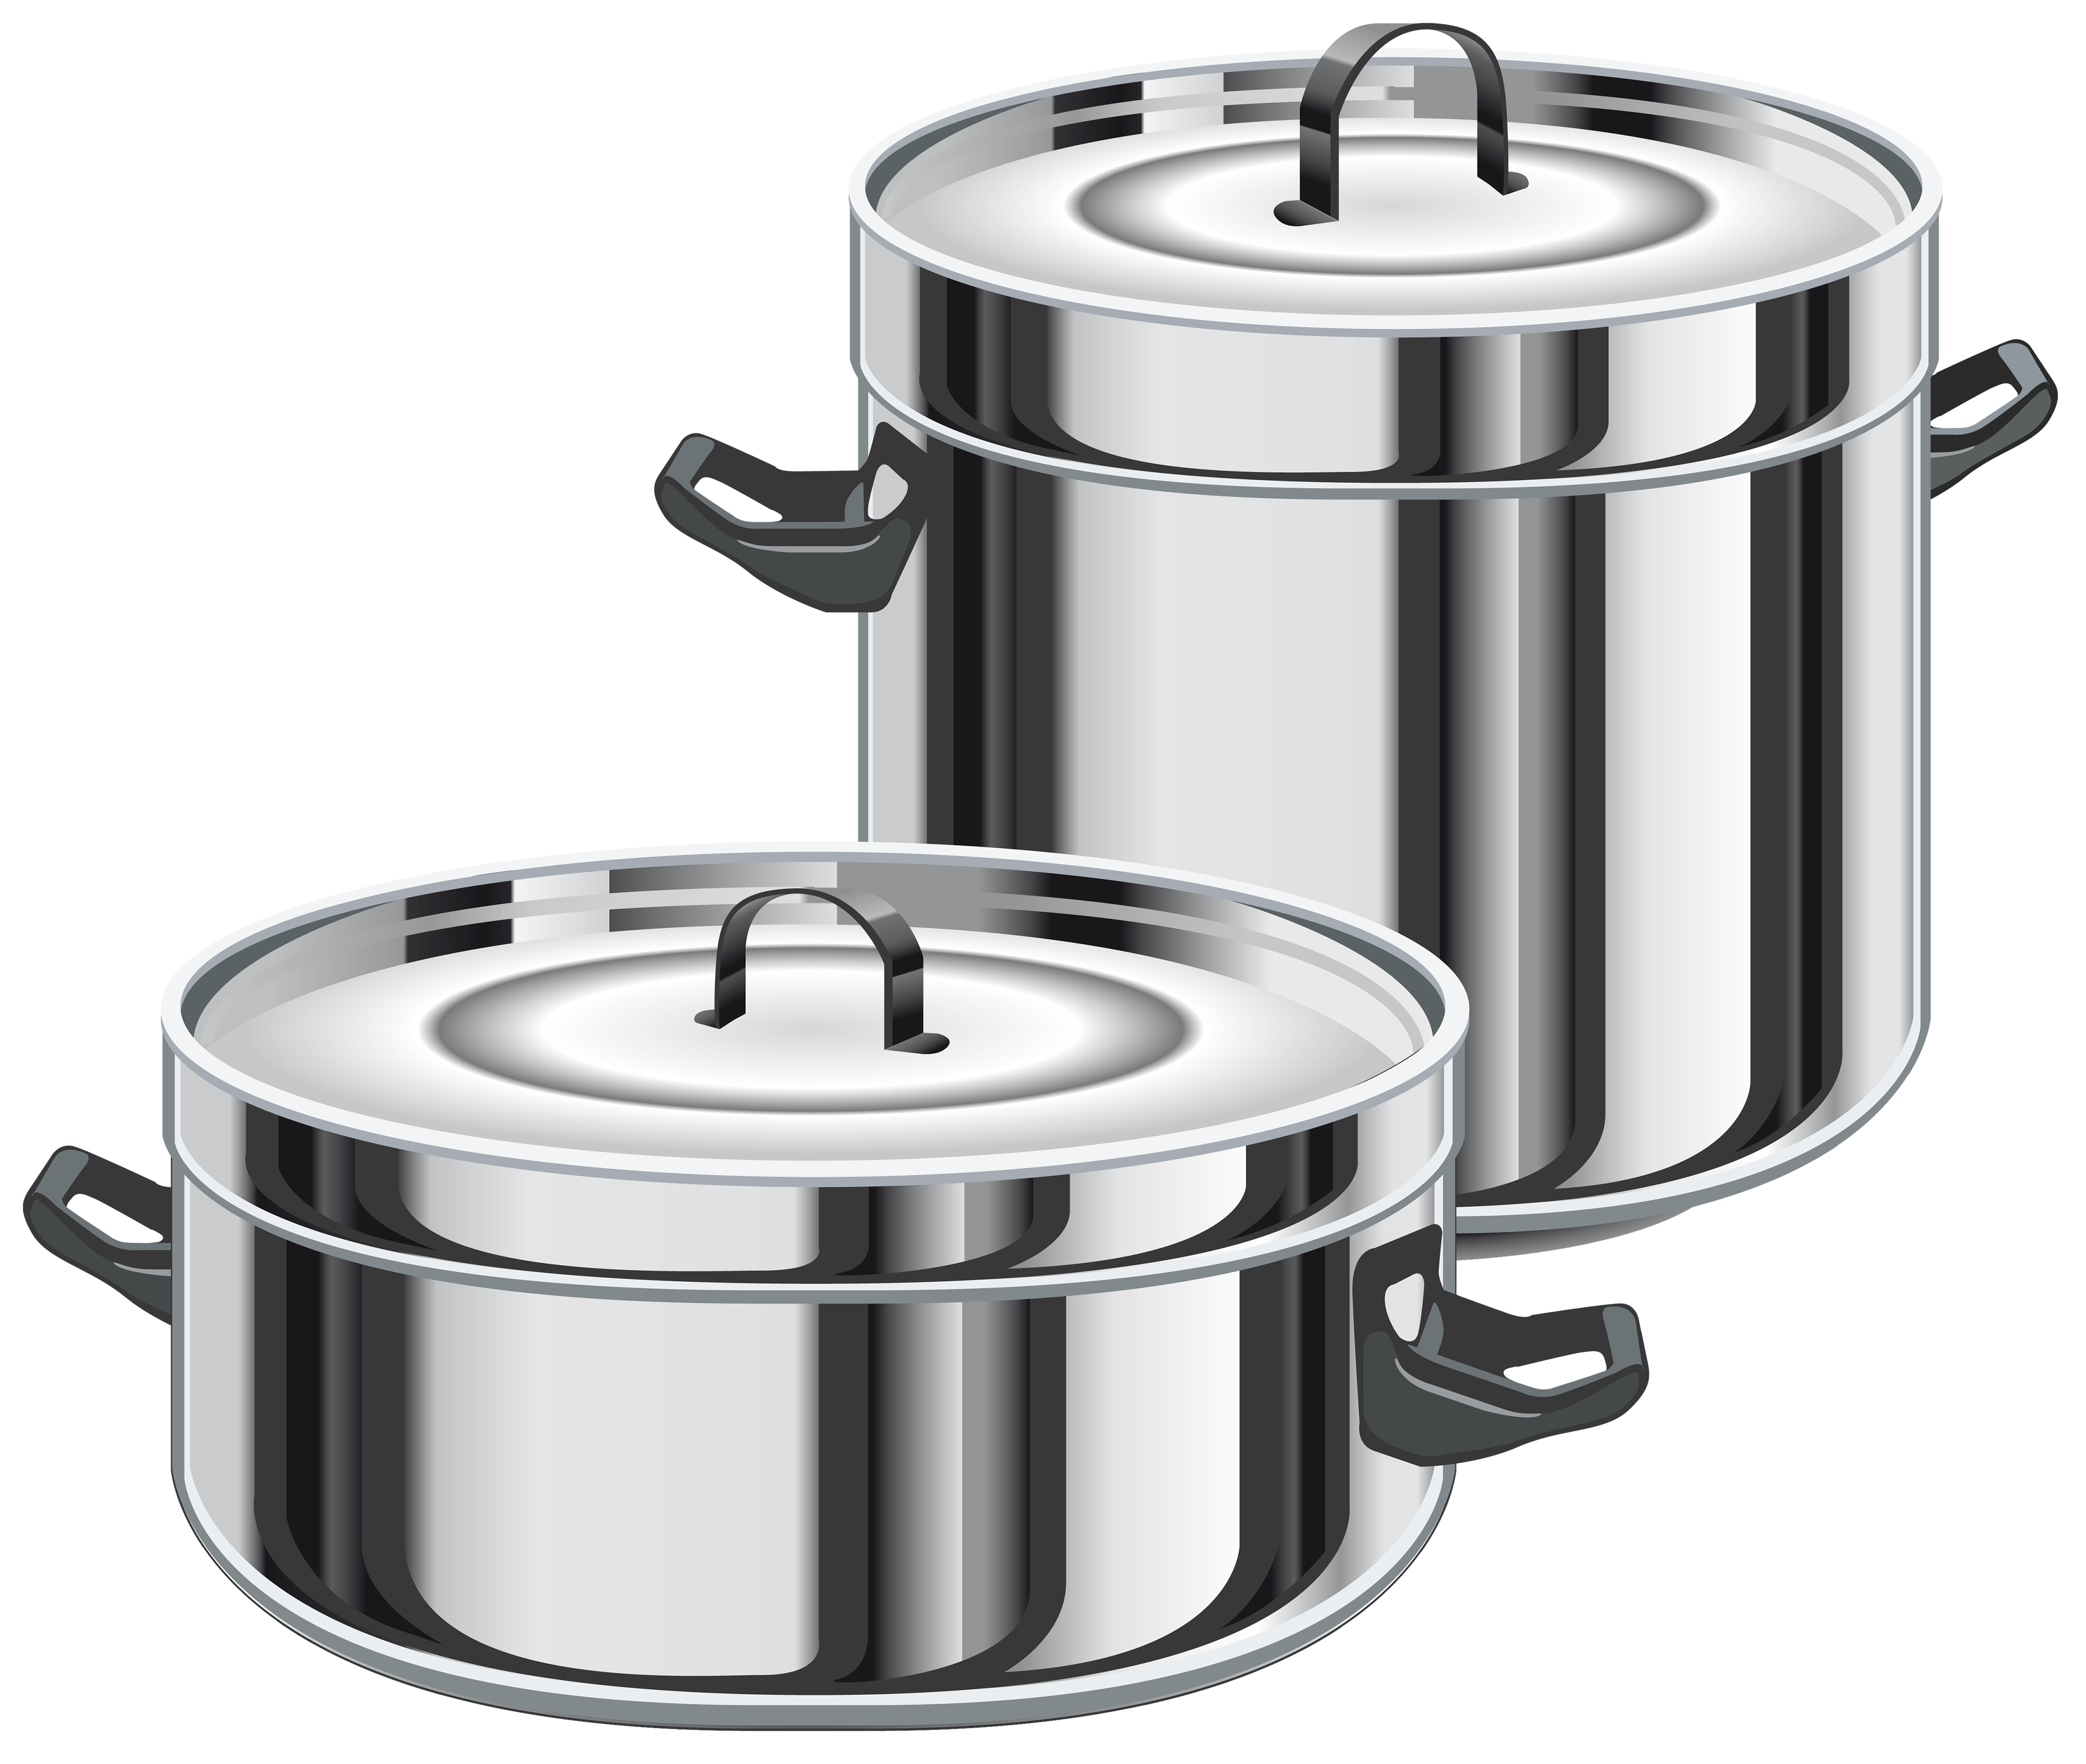 Top Pot Lineart By Frankes Cooking Clipart Black And - Pot Black And White  Clipart - Free Transparent PNG Clipart Images Download